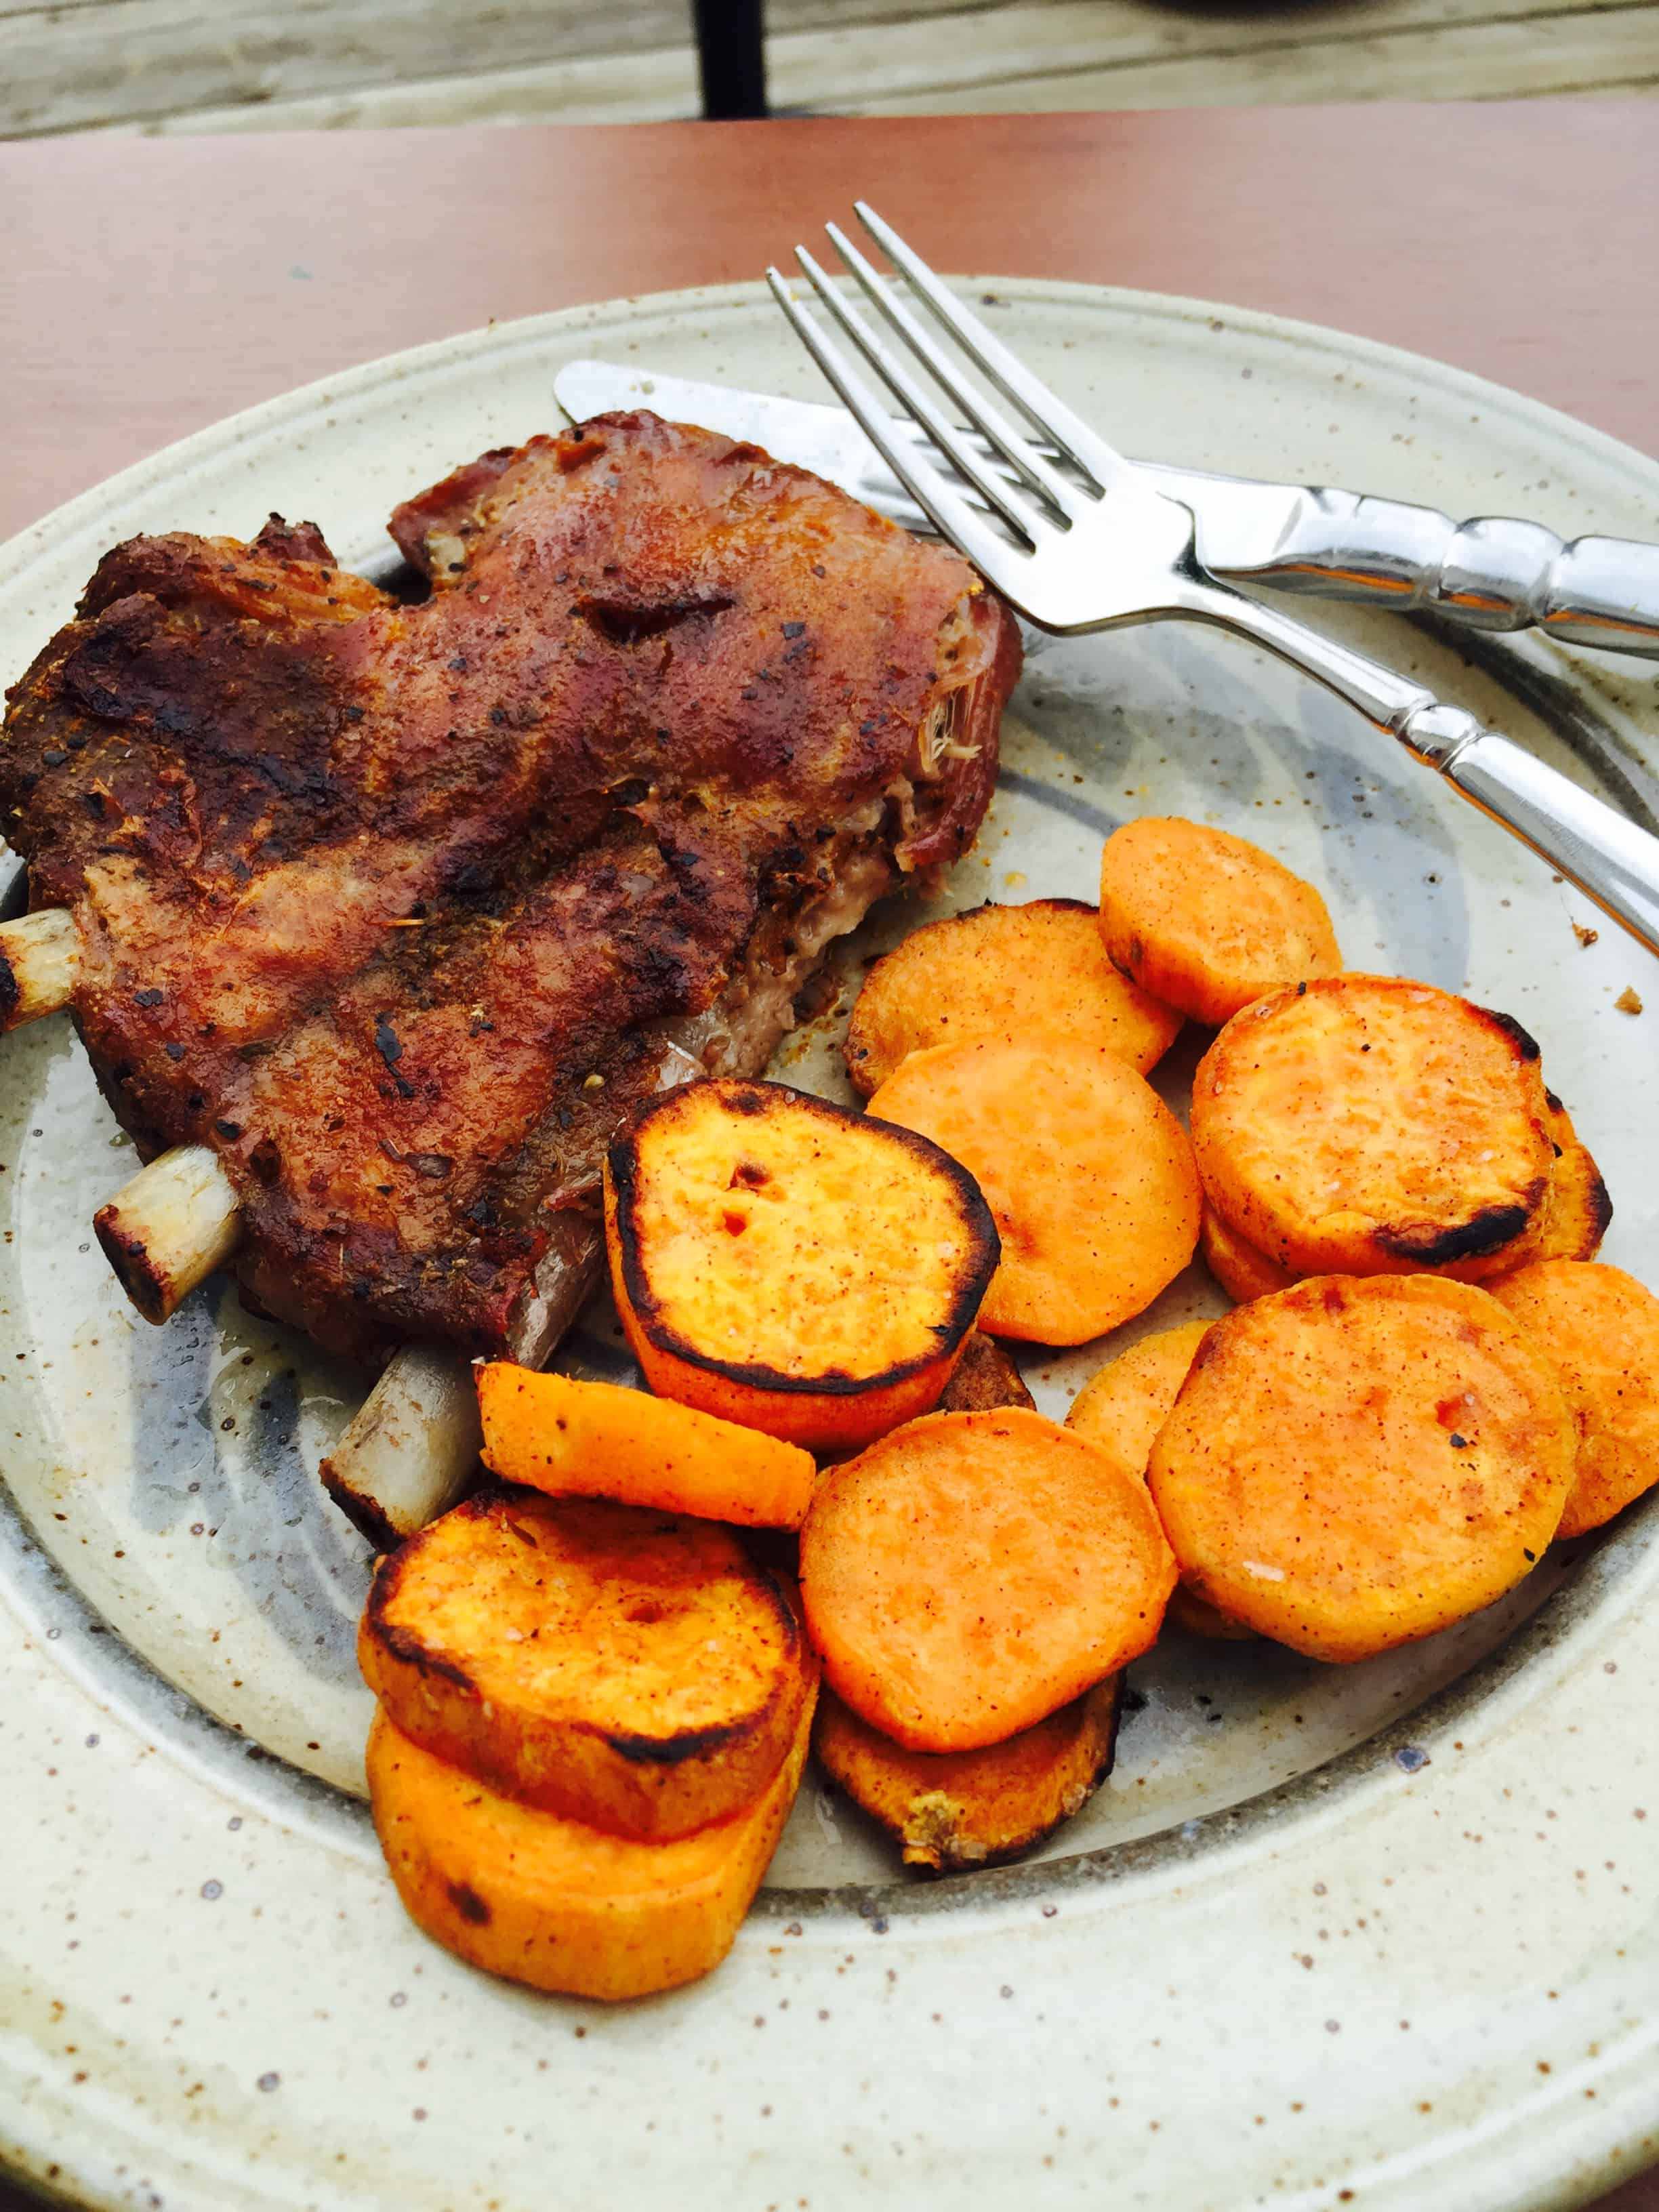 Grilled Sweet Potato Medallions, shown with Spectacular Grilled Dry-Rub Ribs.